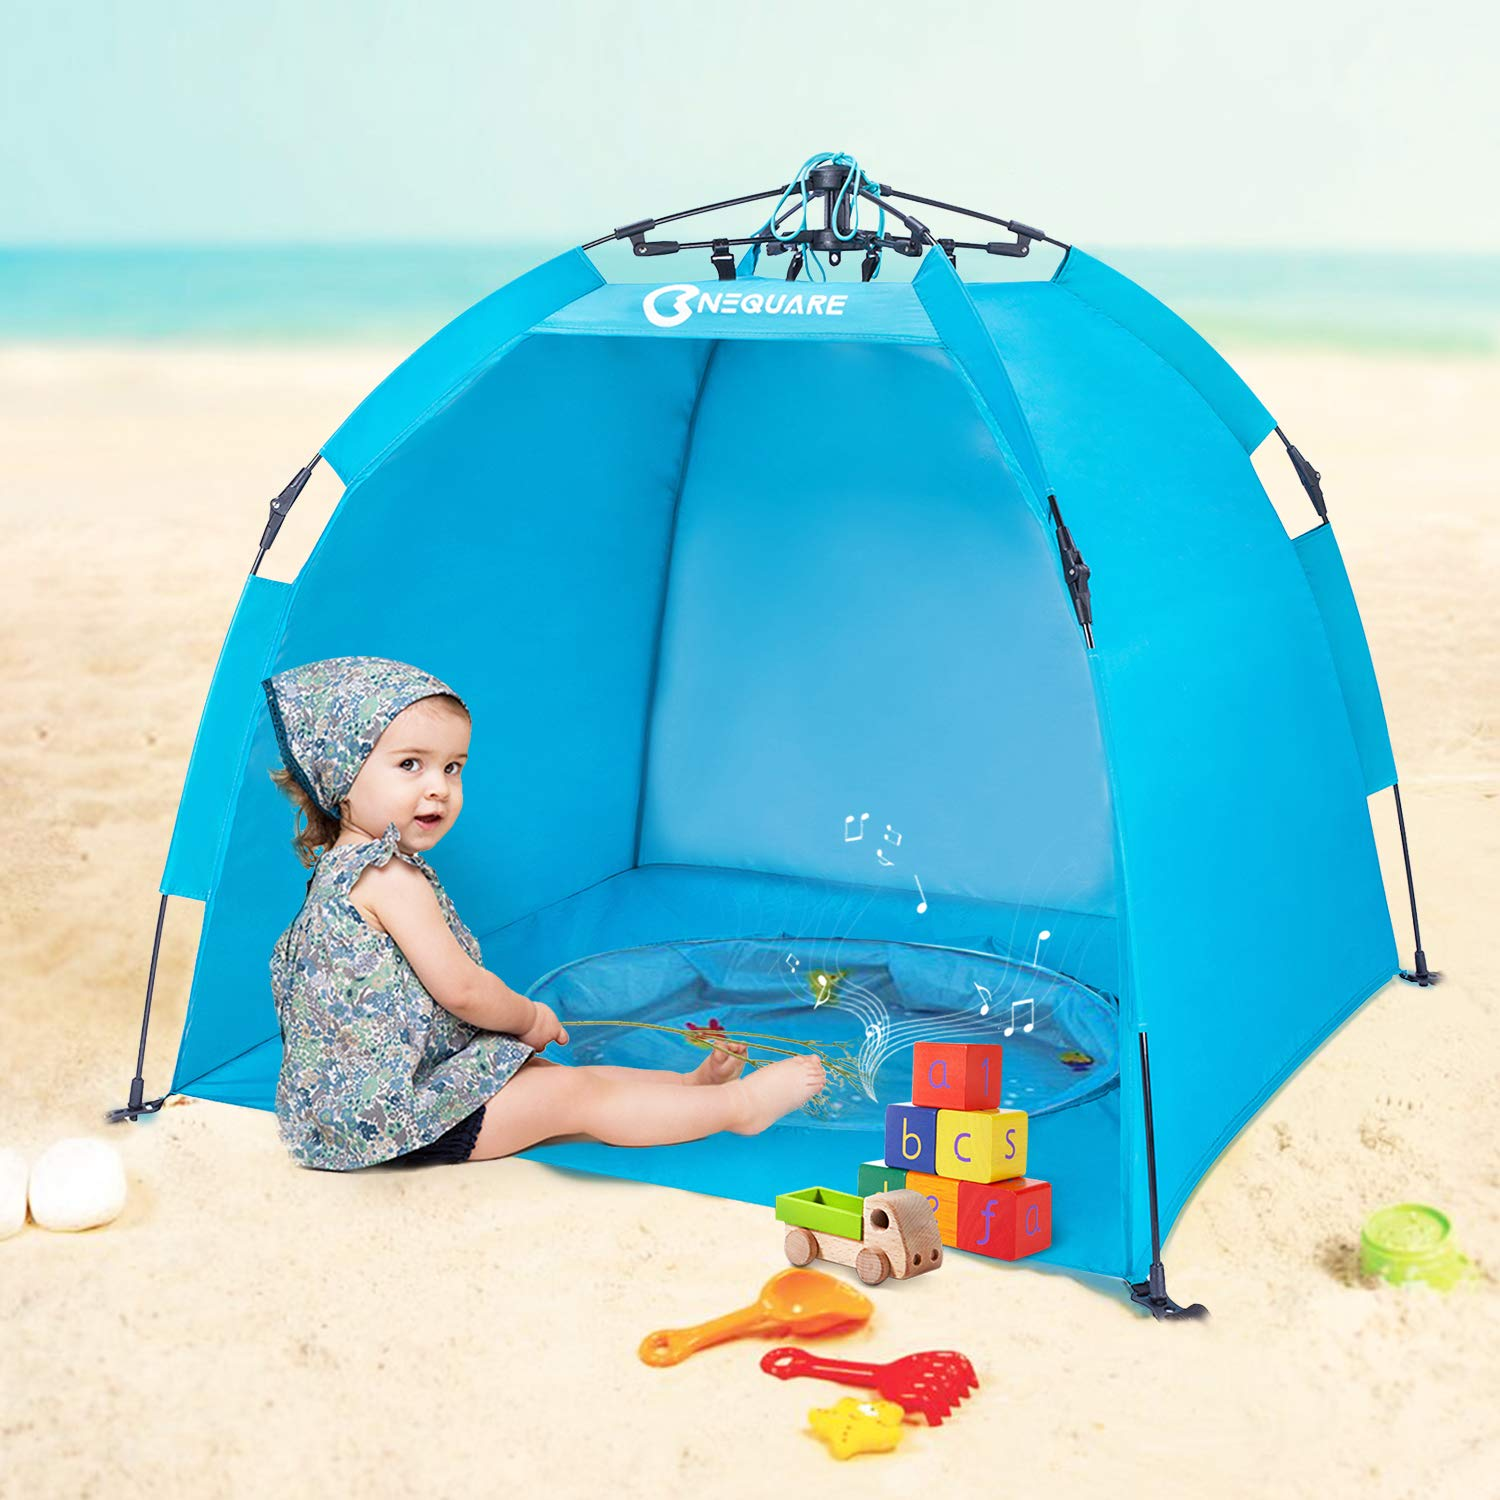 UPF 50 Easily Folds Into a Carrying Bag for Outdoors /& Beach Babymoov Anti-UV Tent Pop Up Sun Shelter for Toddlers and Children